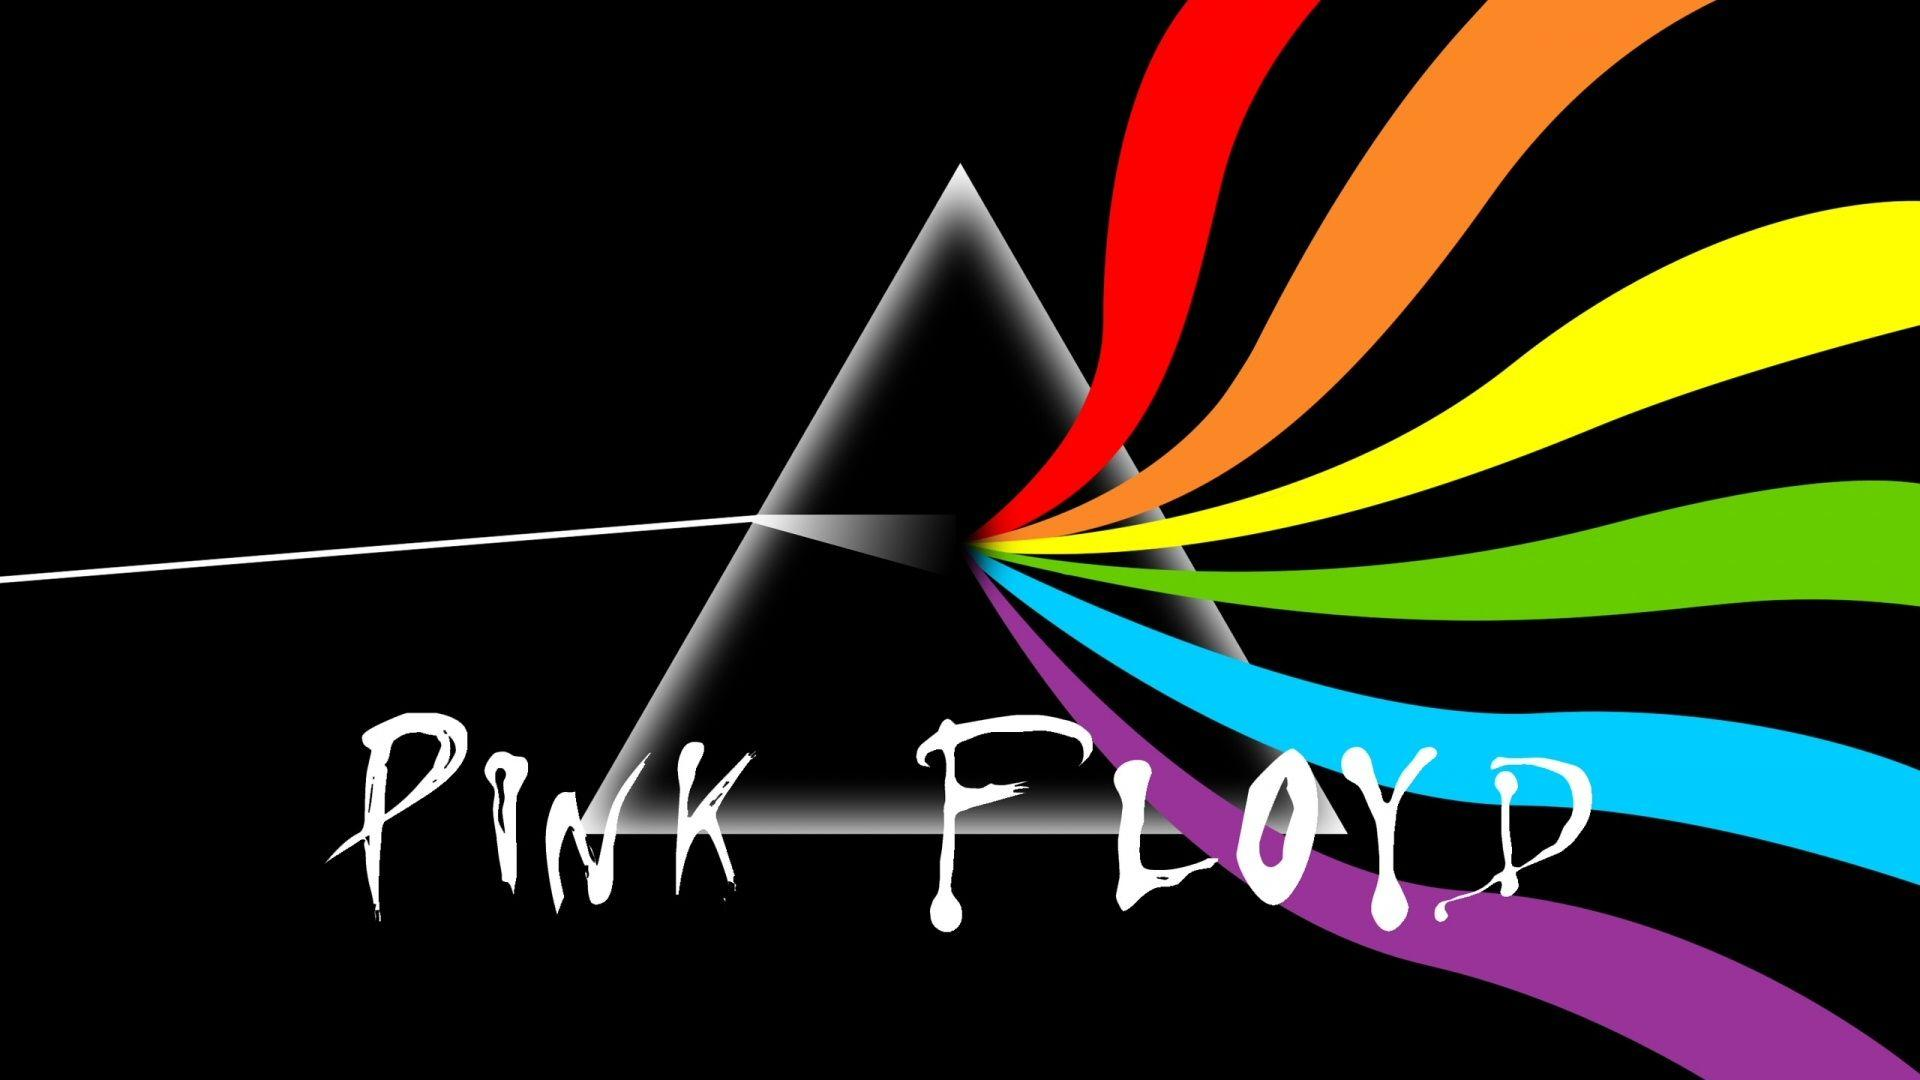 Pink Floyd Pictures 23804 1920x1080 px ~ HDWallSource